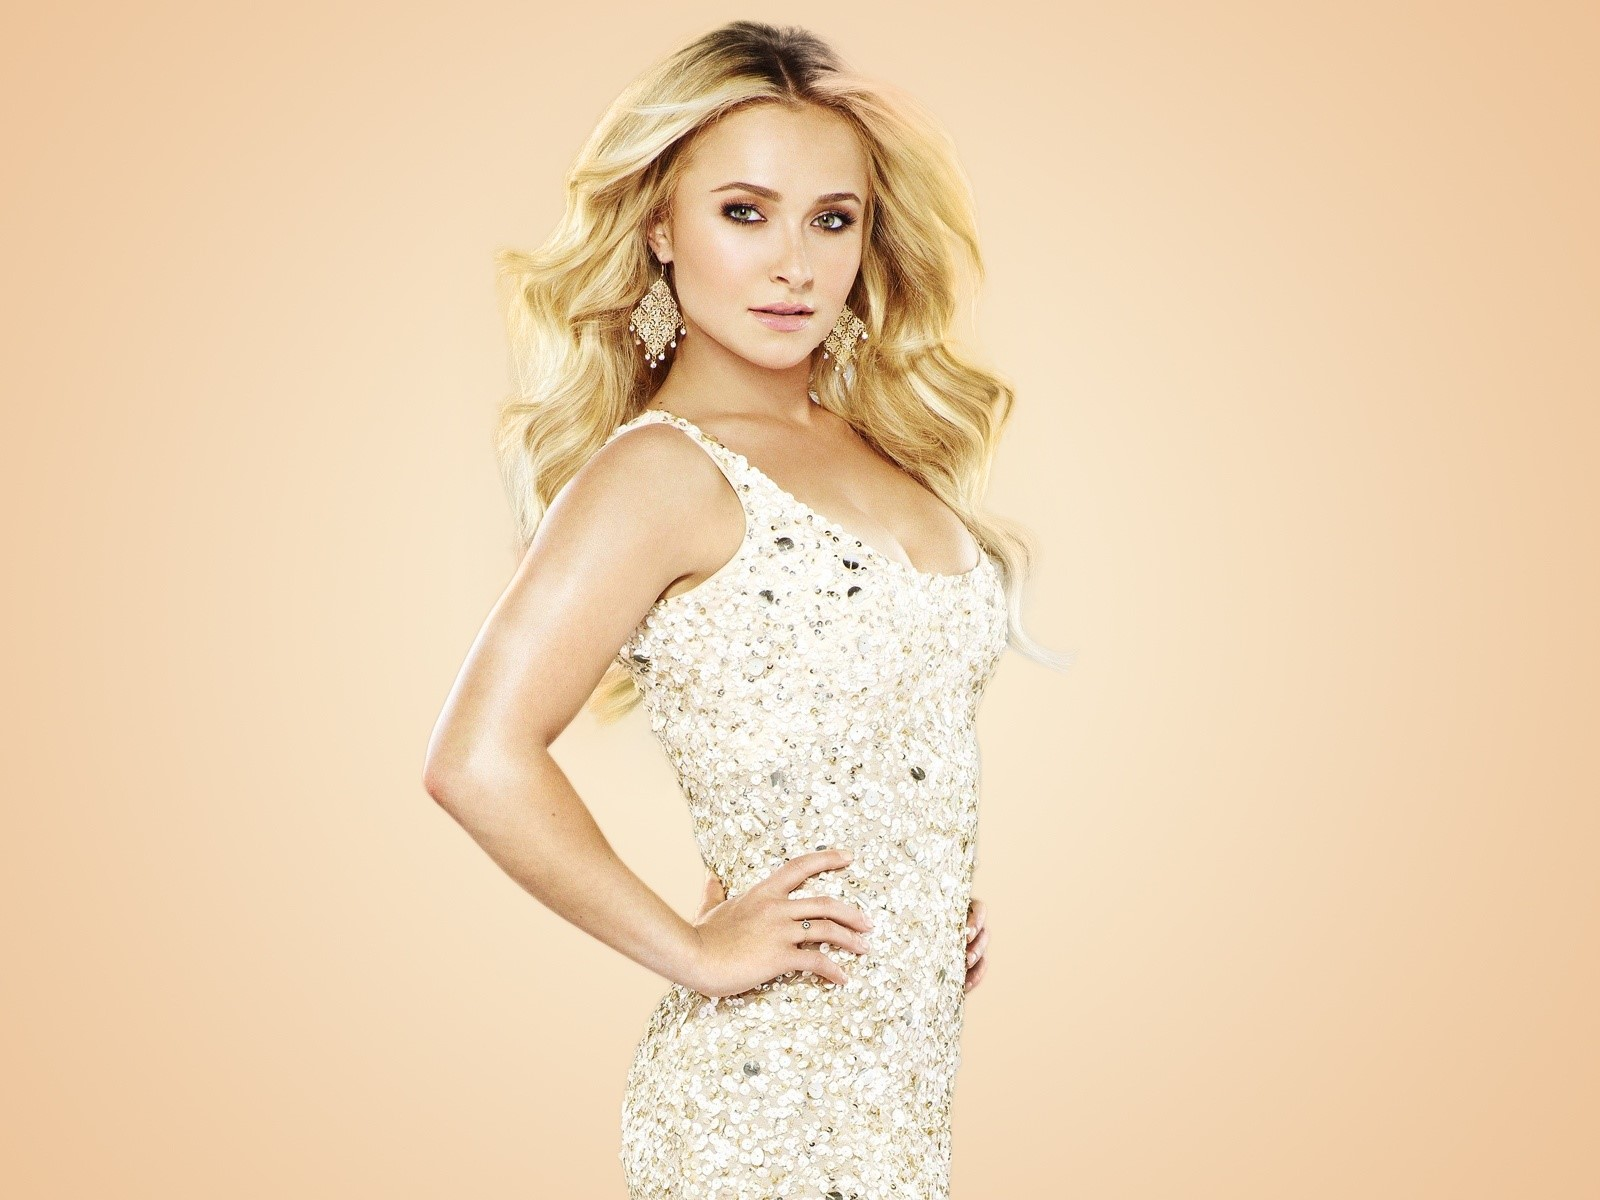 Wallpaper Hayden Panettiere en Nashville Images